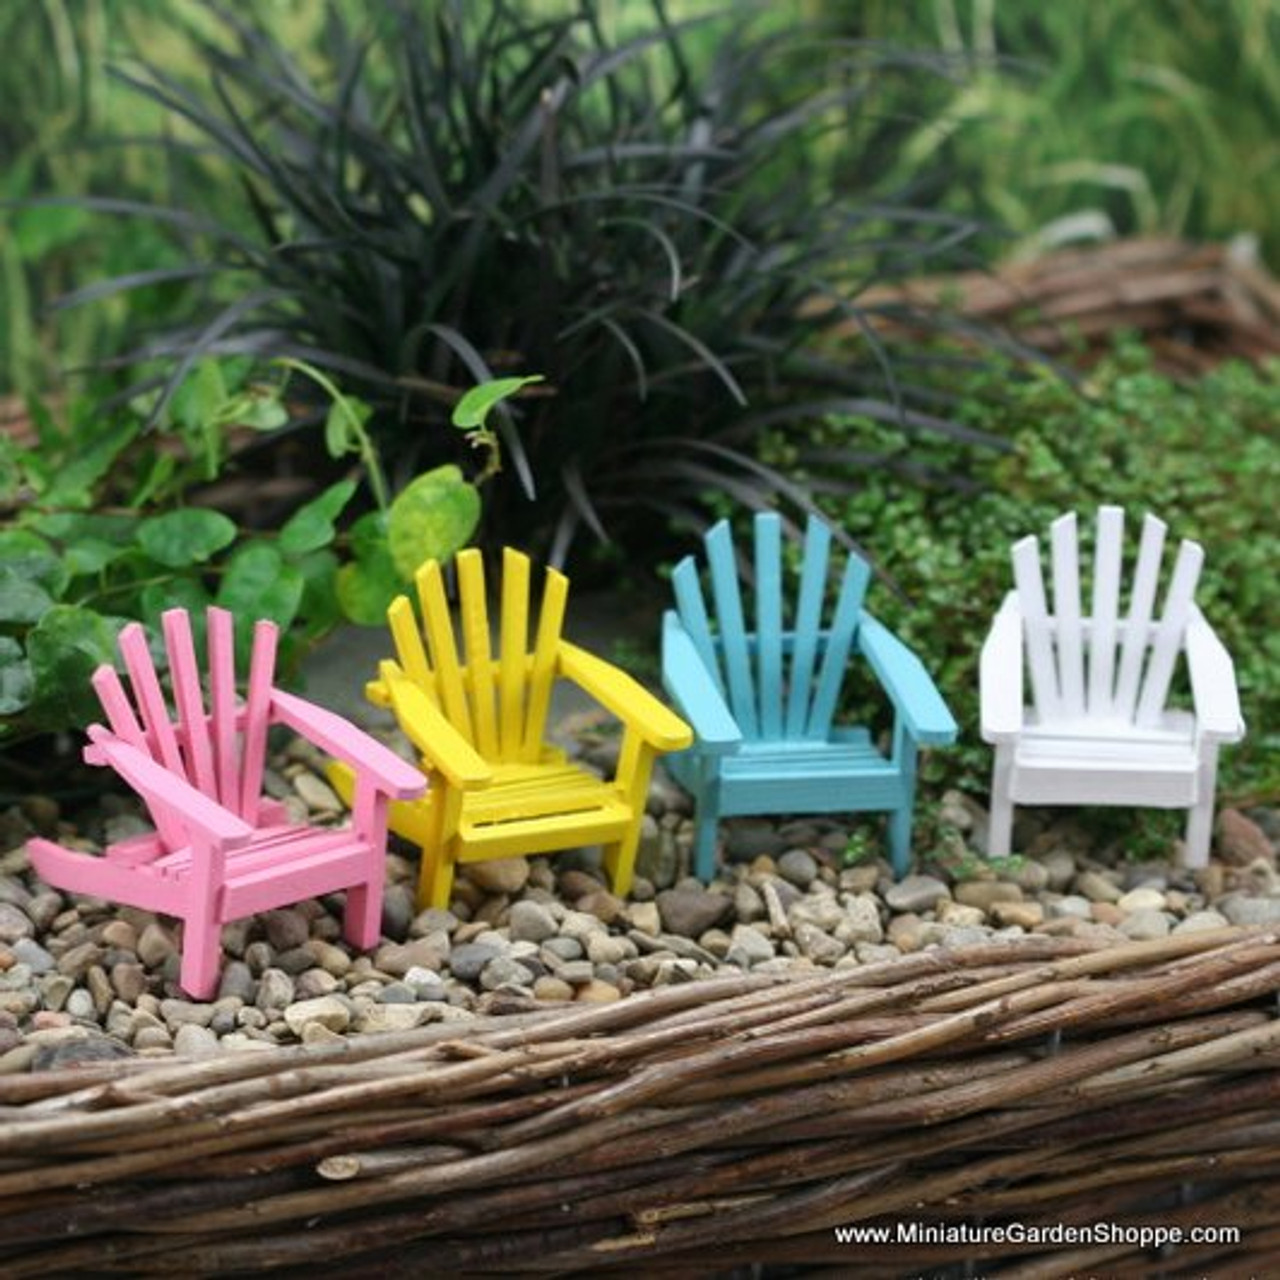 Admirable Adirondack Chair Original Collection Andrewgaddart Wooden Chair Designs For Living Room Andrewgaddartcom